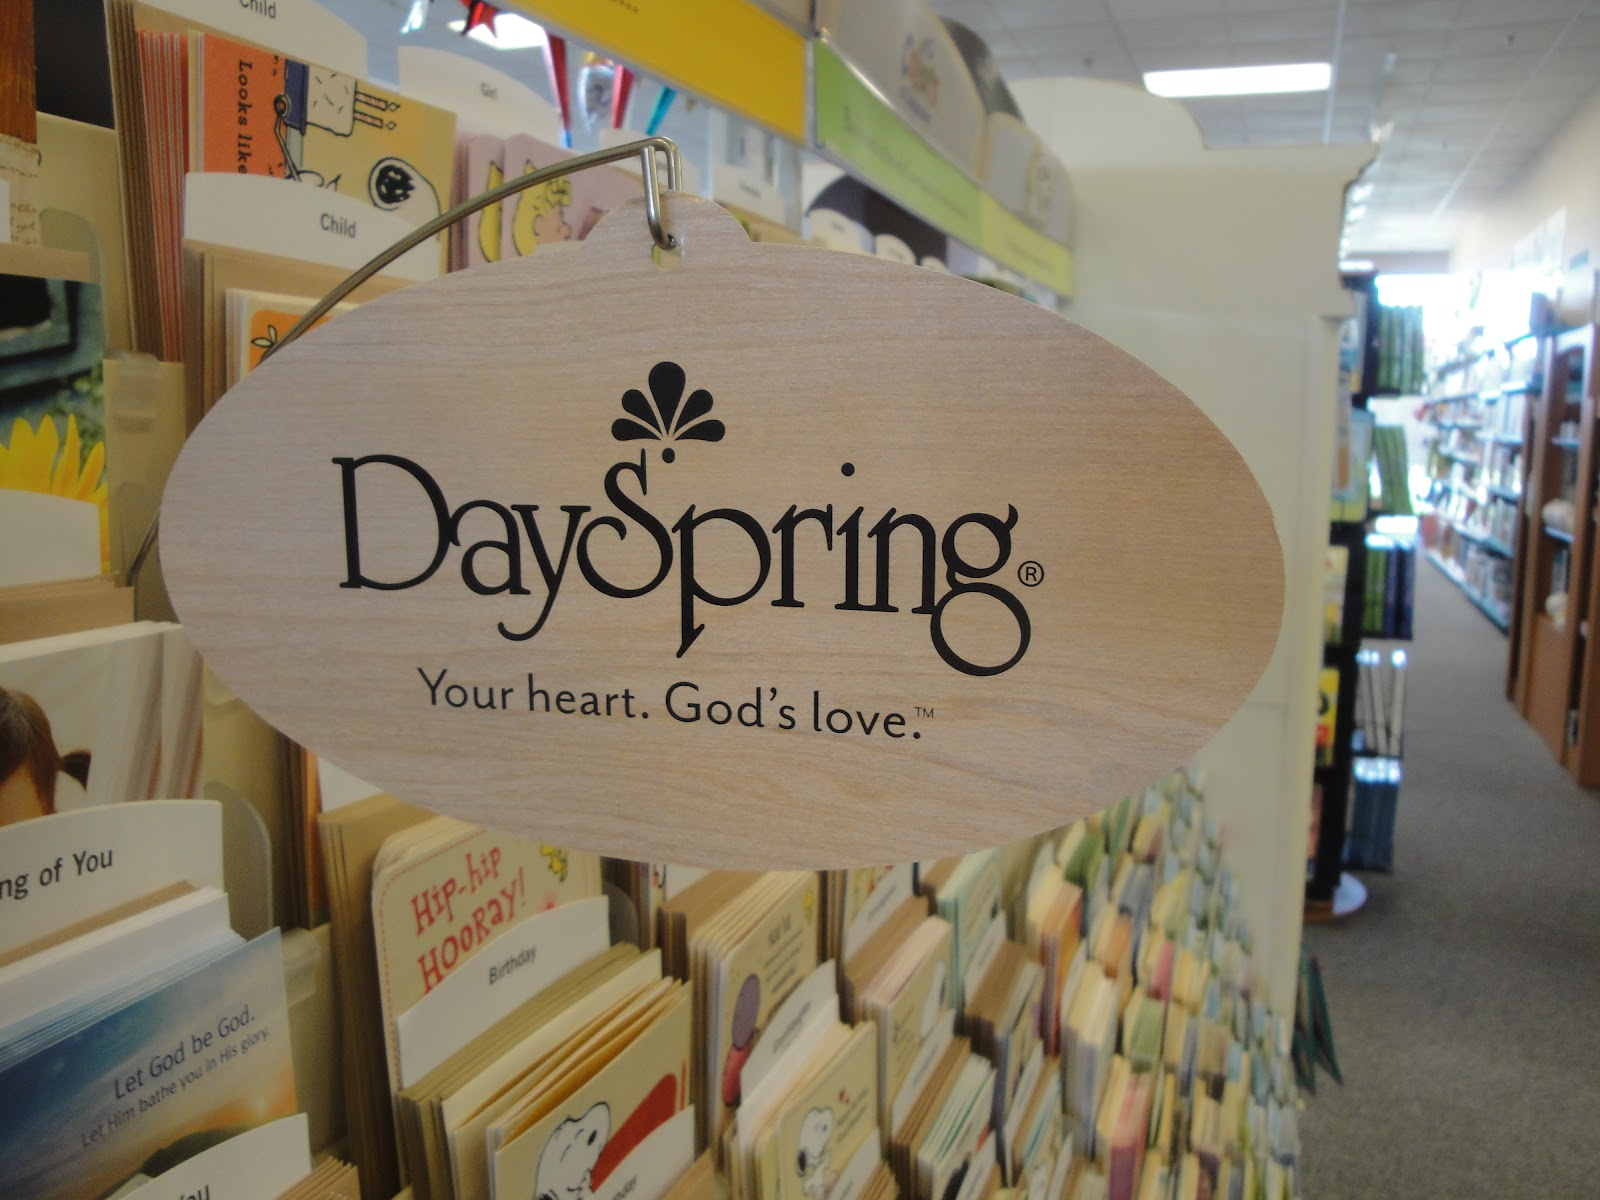 Dayspring greeting cards and home decor shopping frugal family tree dayspring greeting cards and home decor shopping m4hsunfo